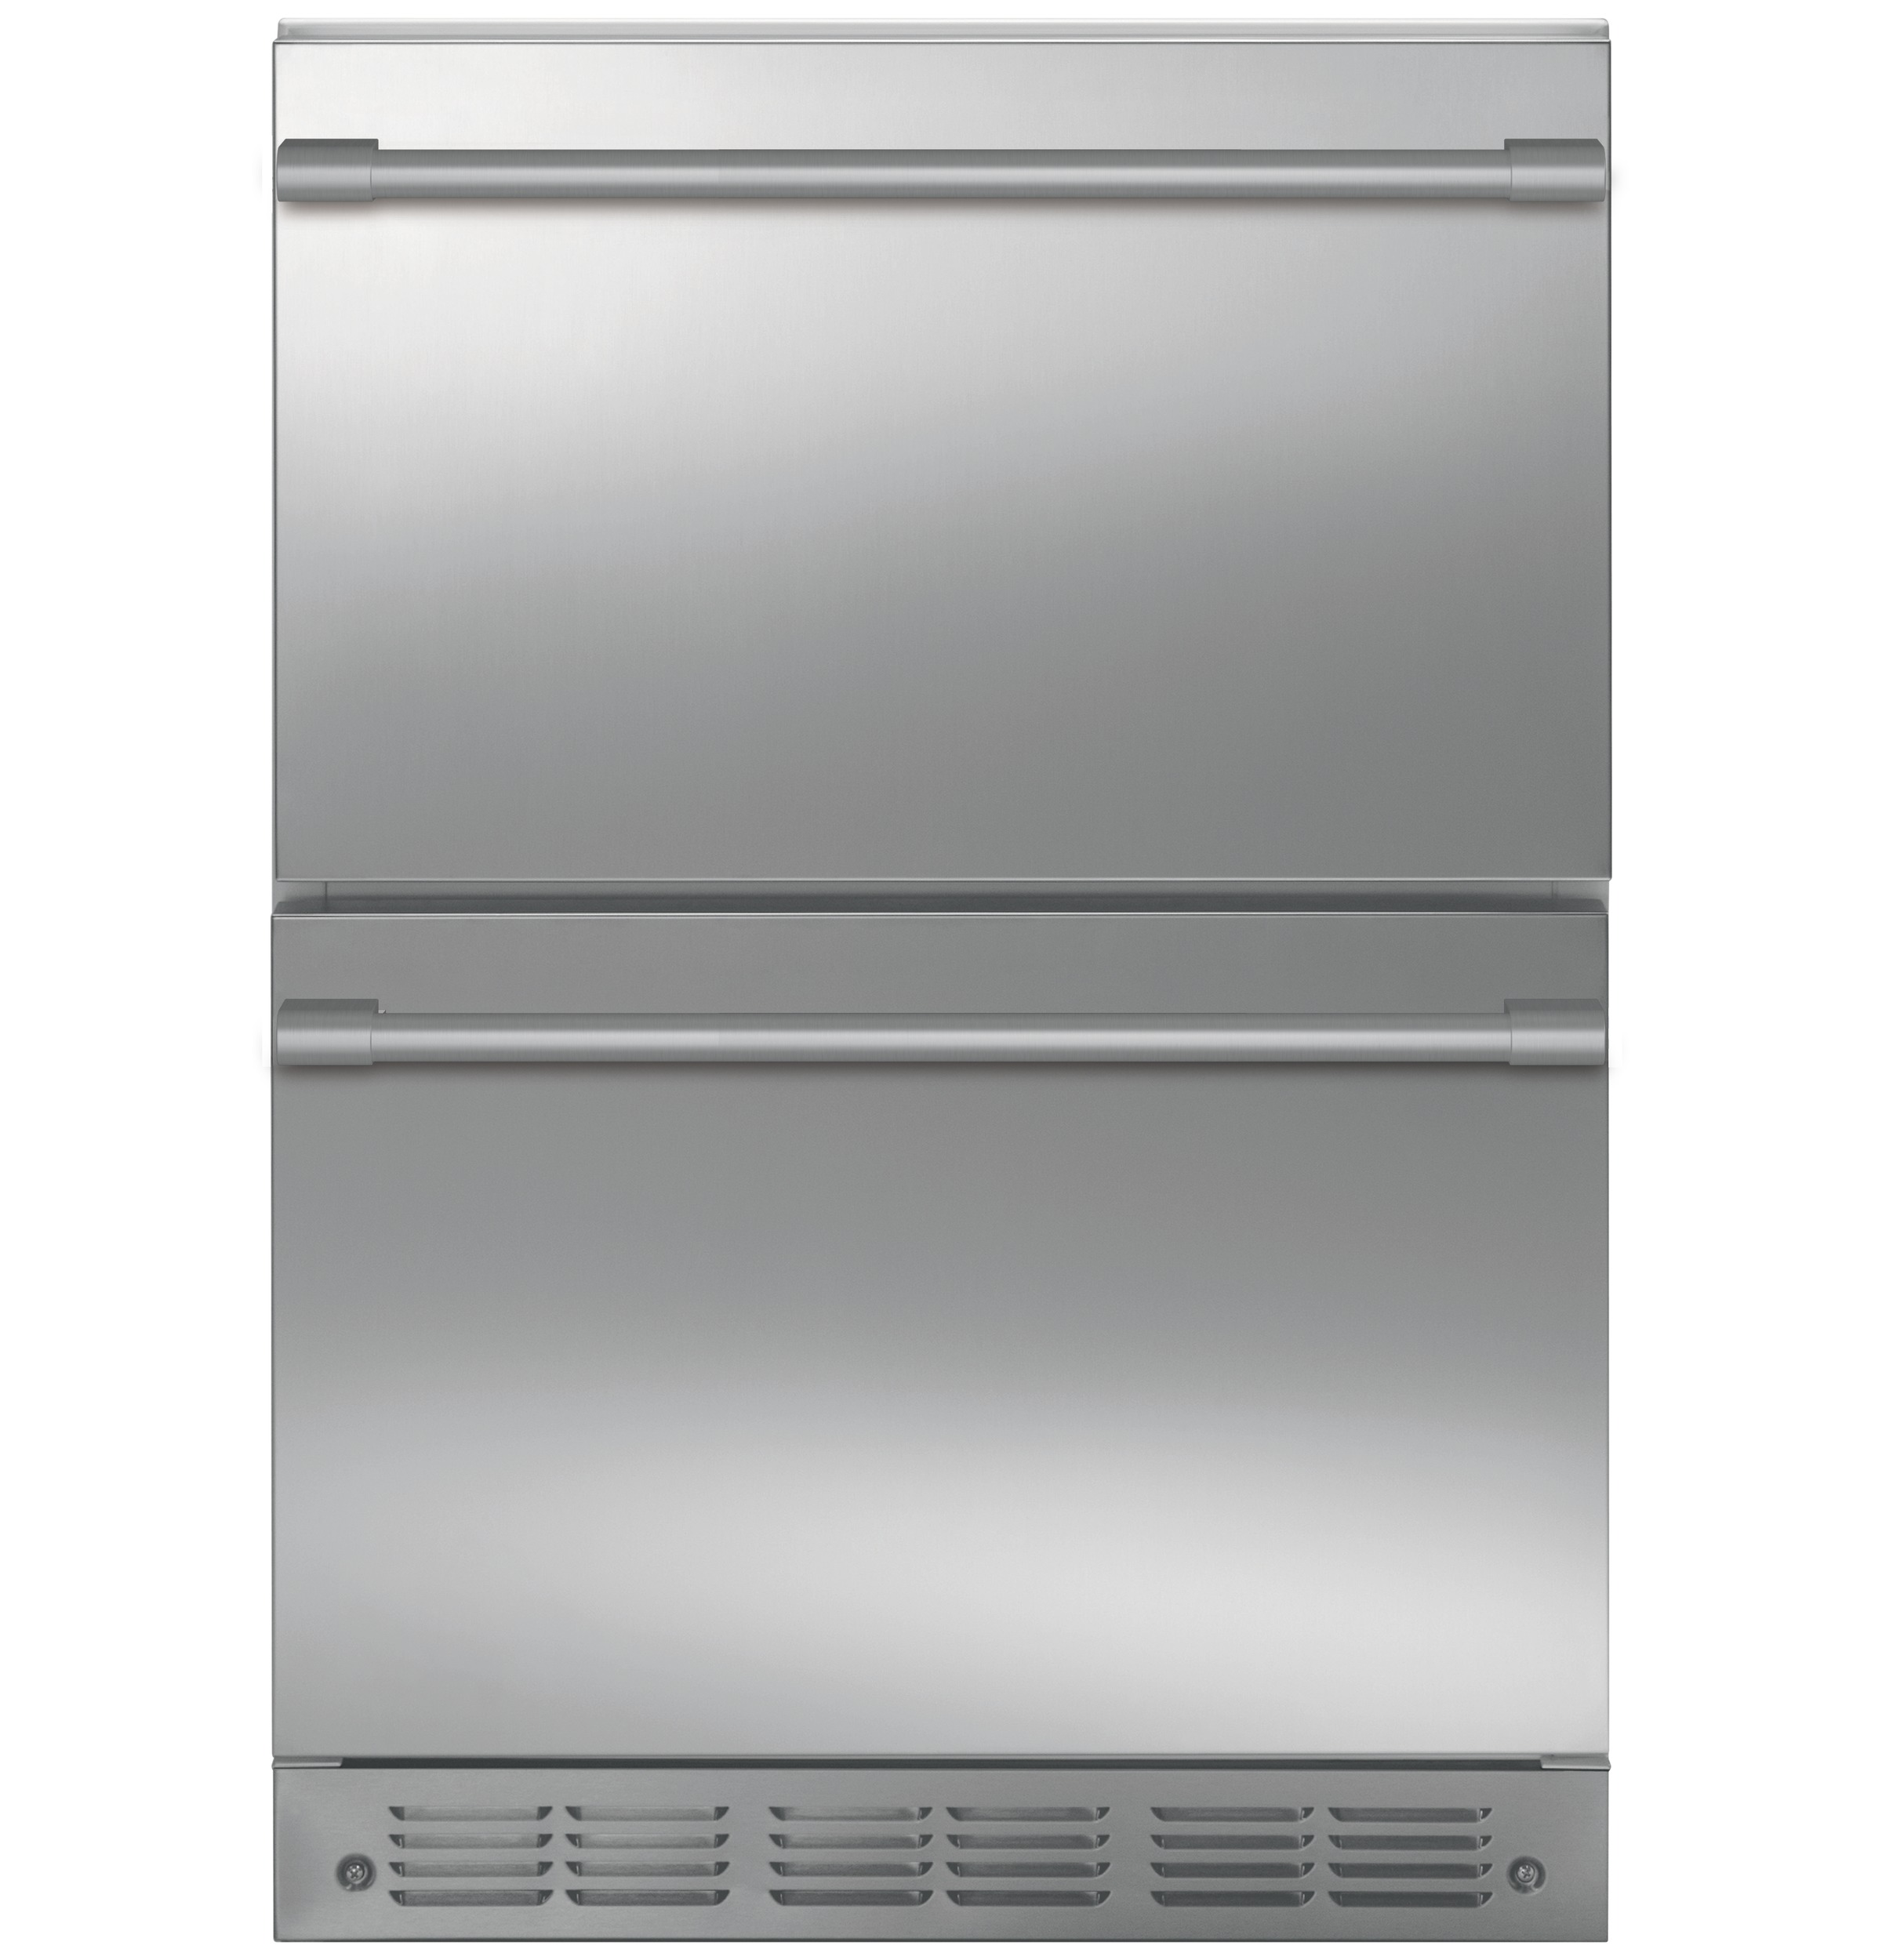 Monogram Fridge ZIDS240NSS